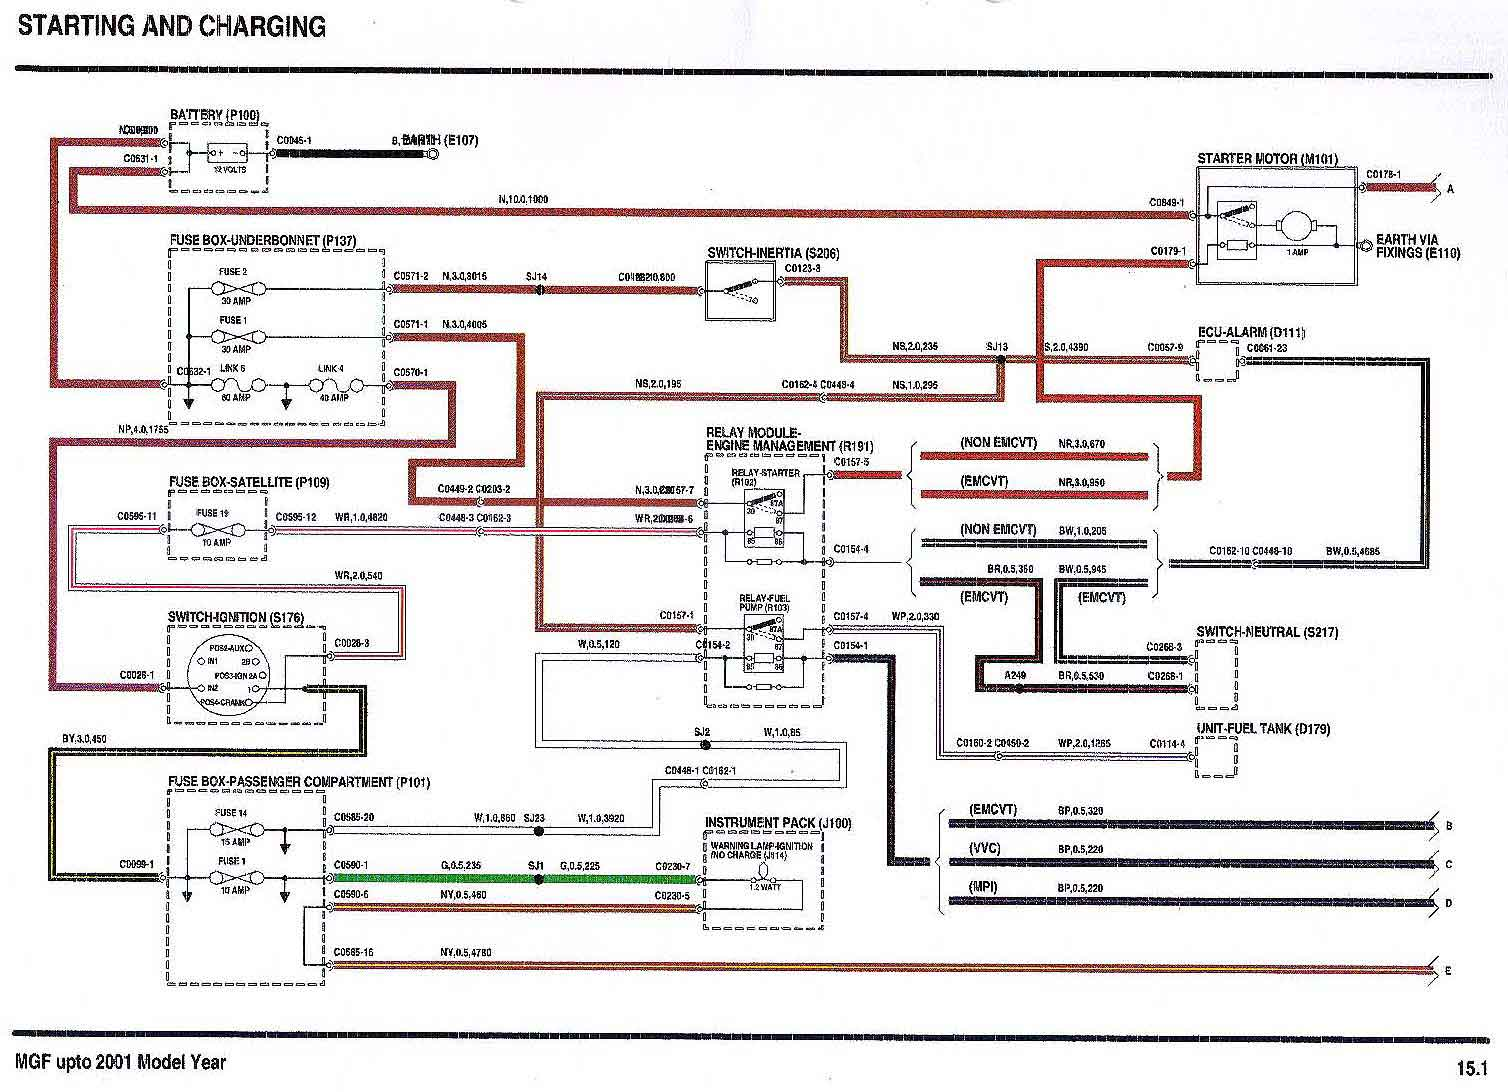 fia master switch - mg-rover.org forums wiring diagram for rover 45 #6